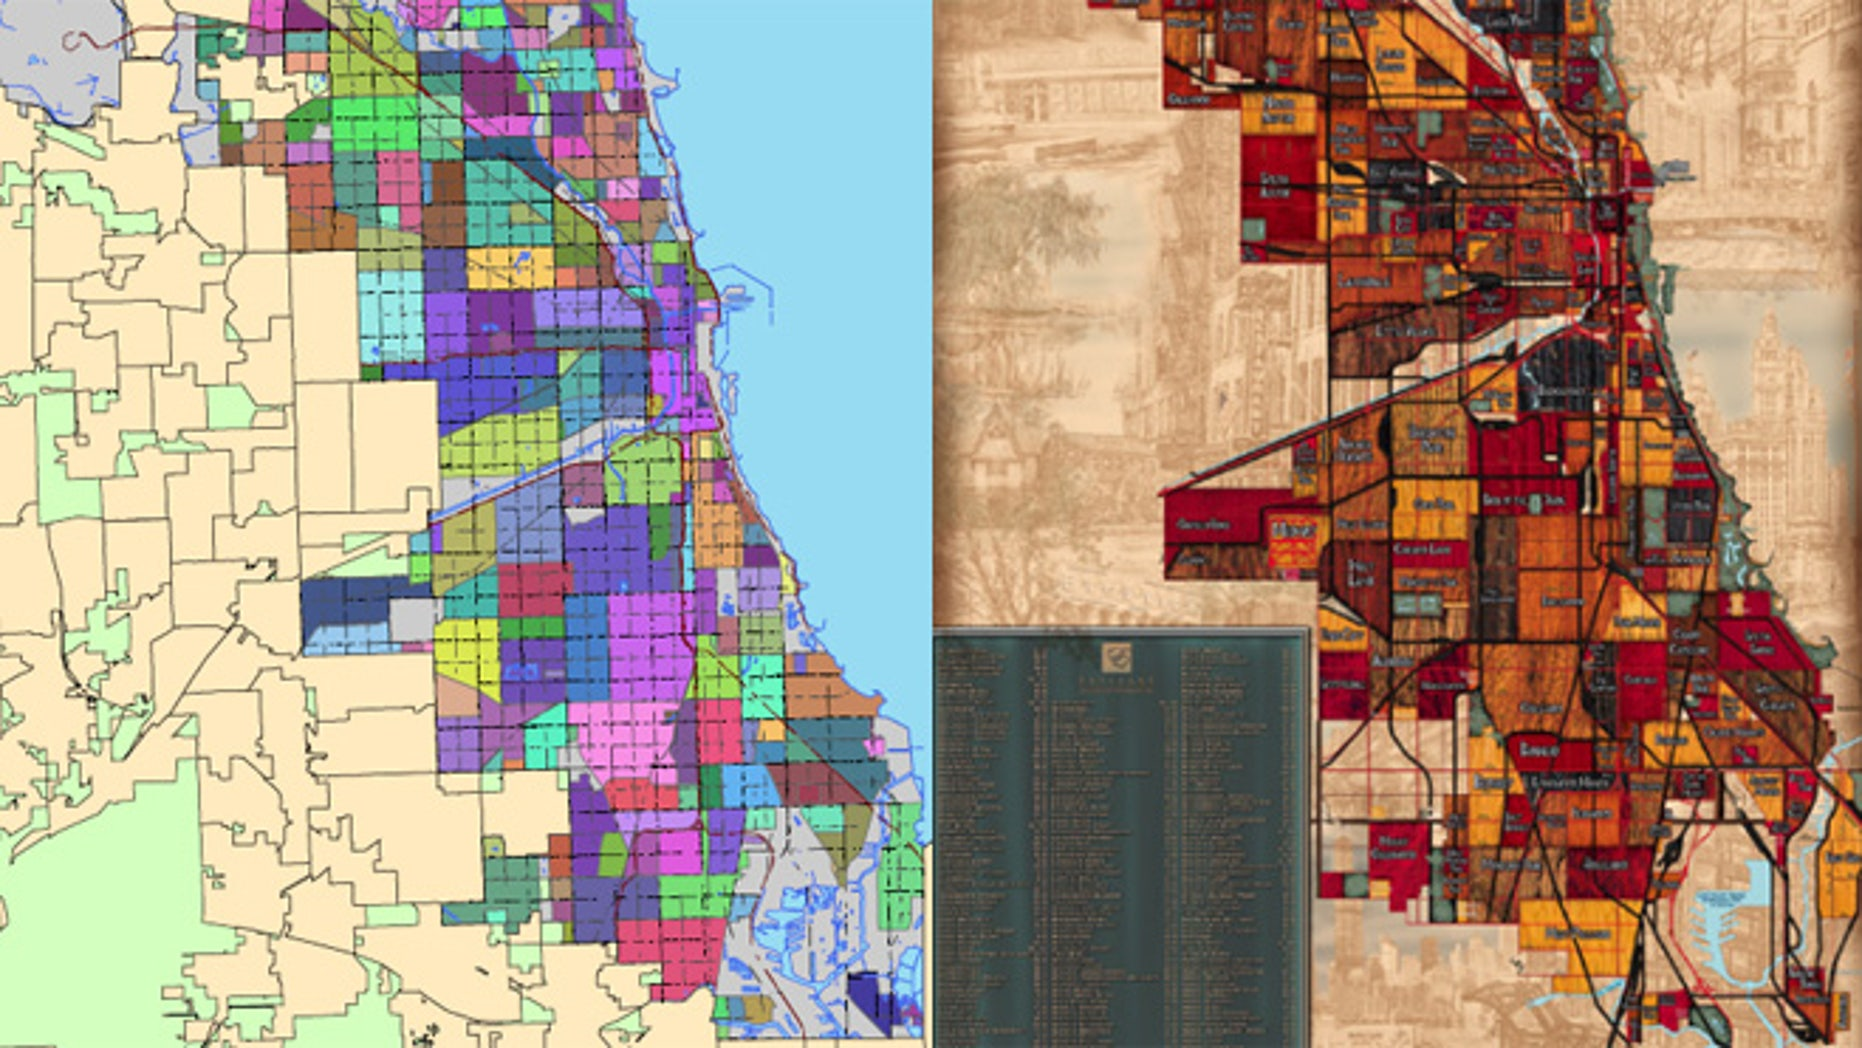 Shown here is the map on the Chicago city website, left, and the map produced by Christopher Devane's company Big Stick.